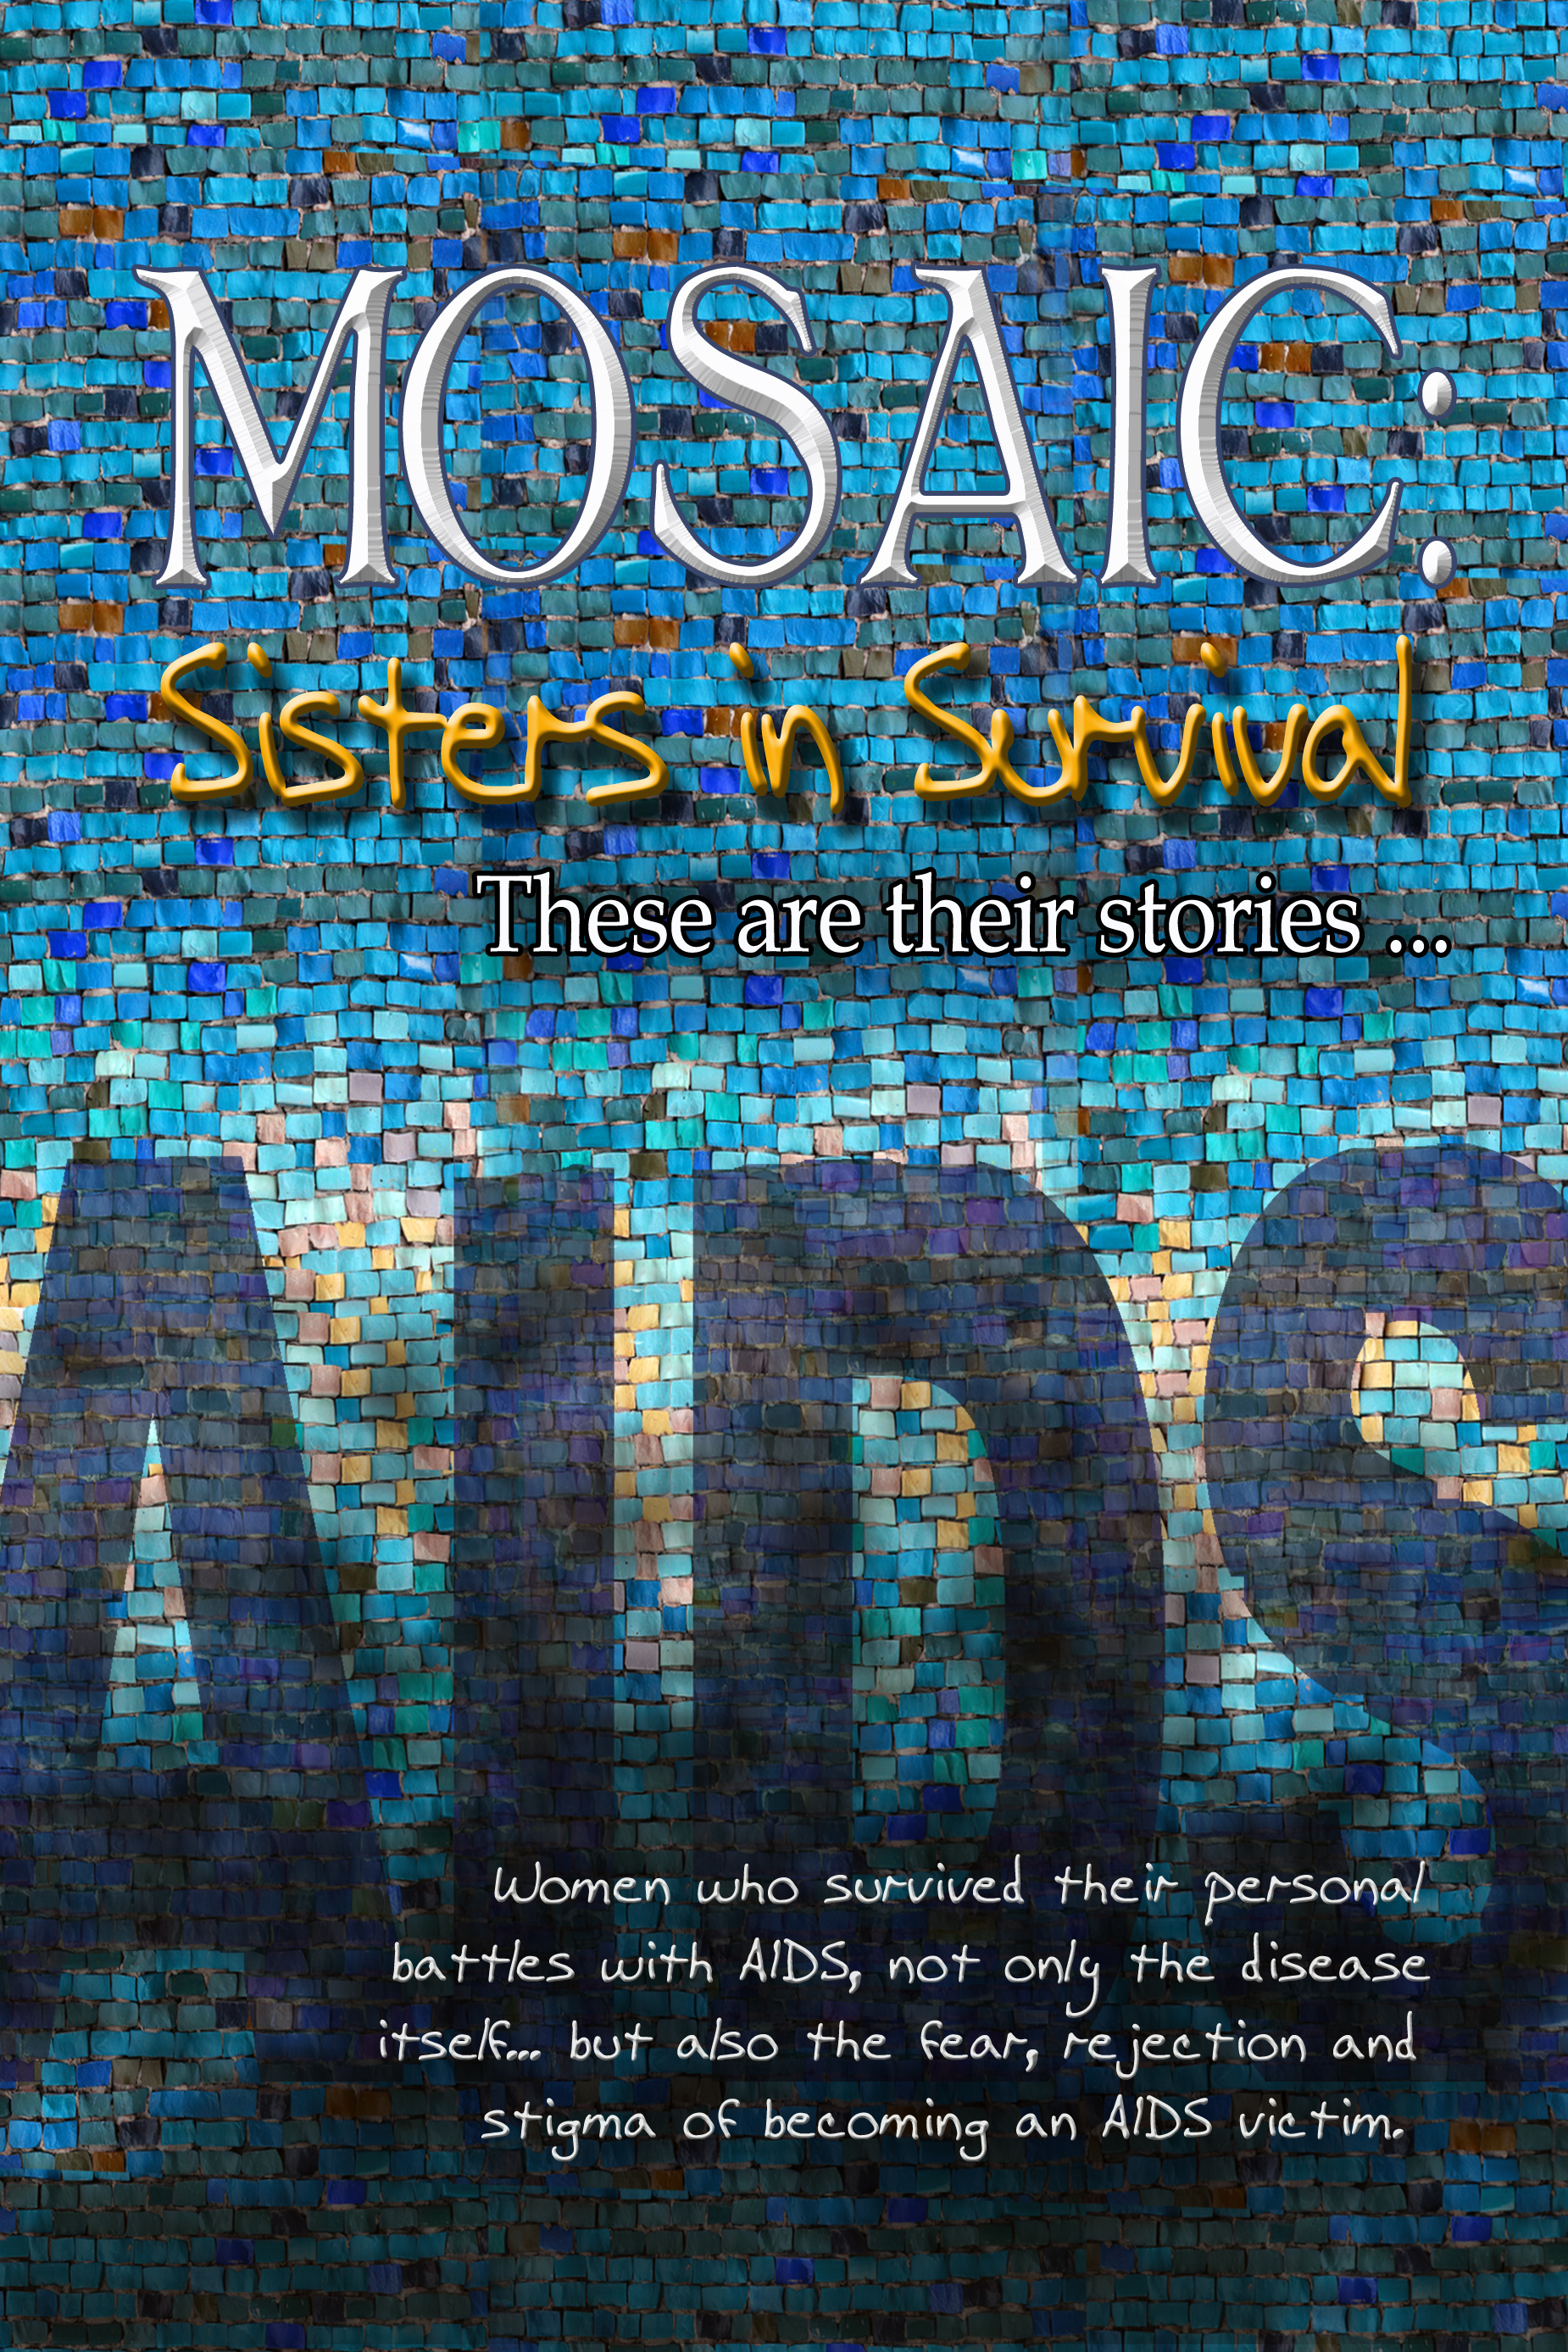 Sisters in Survival